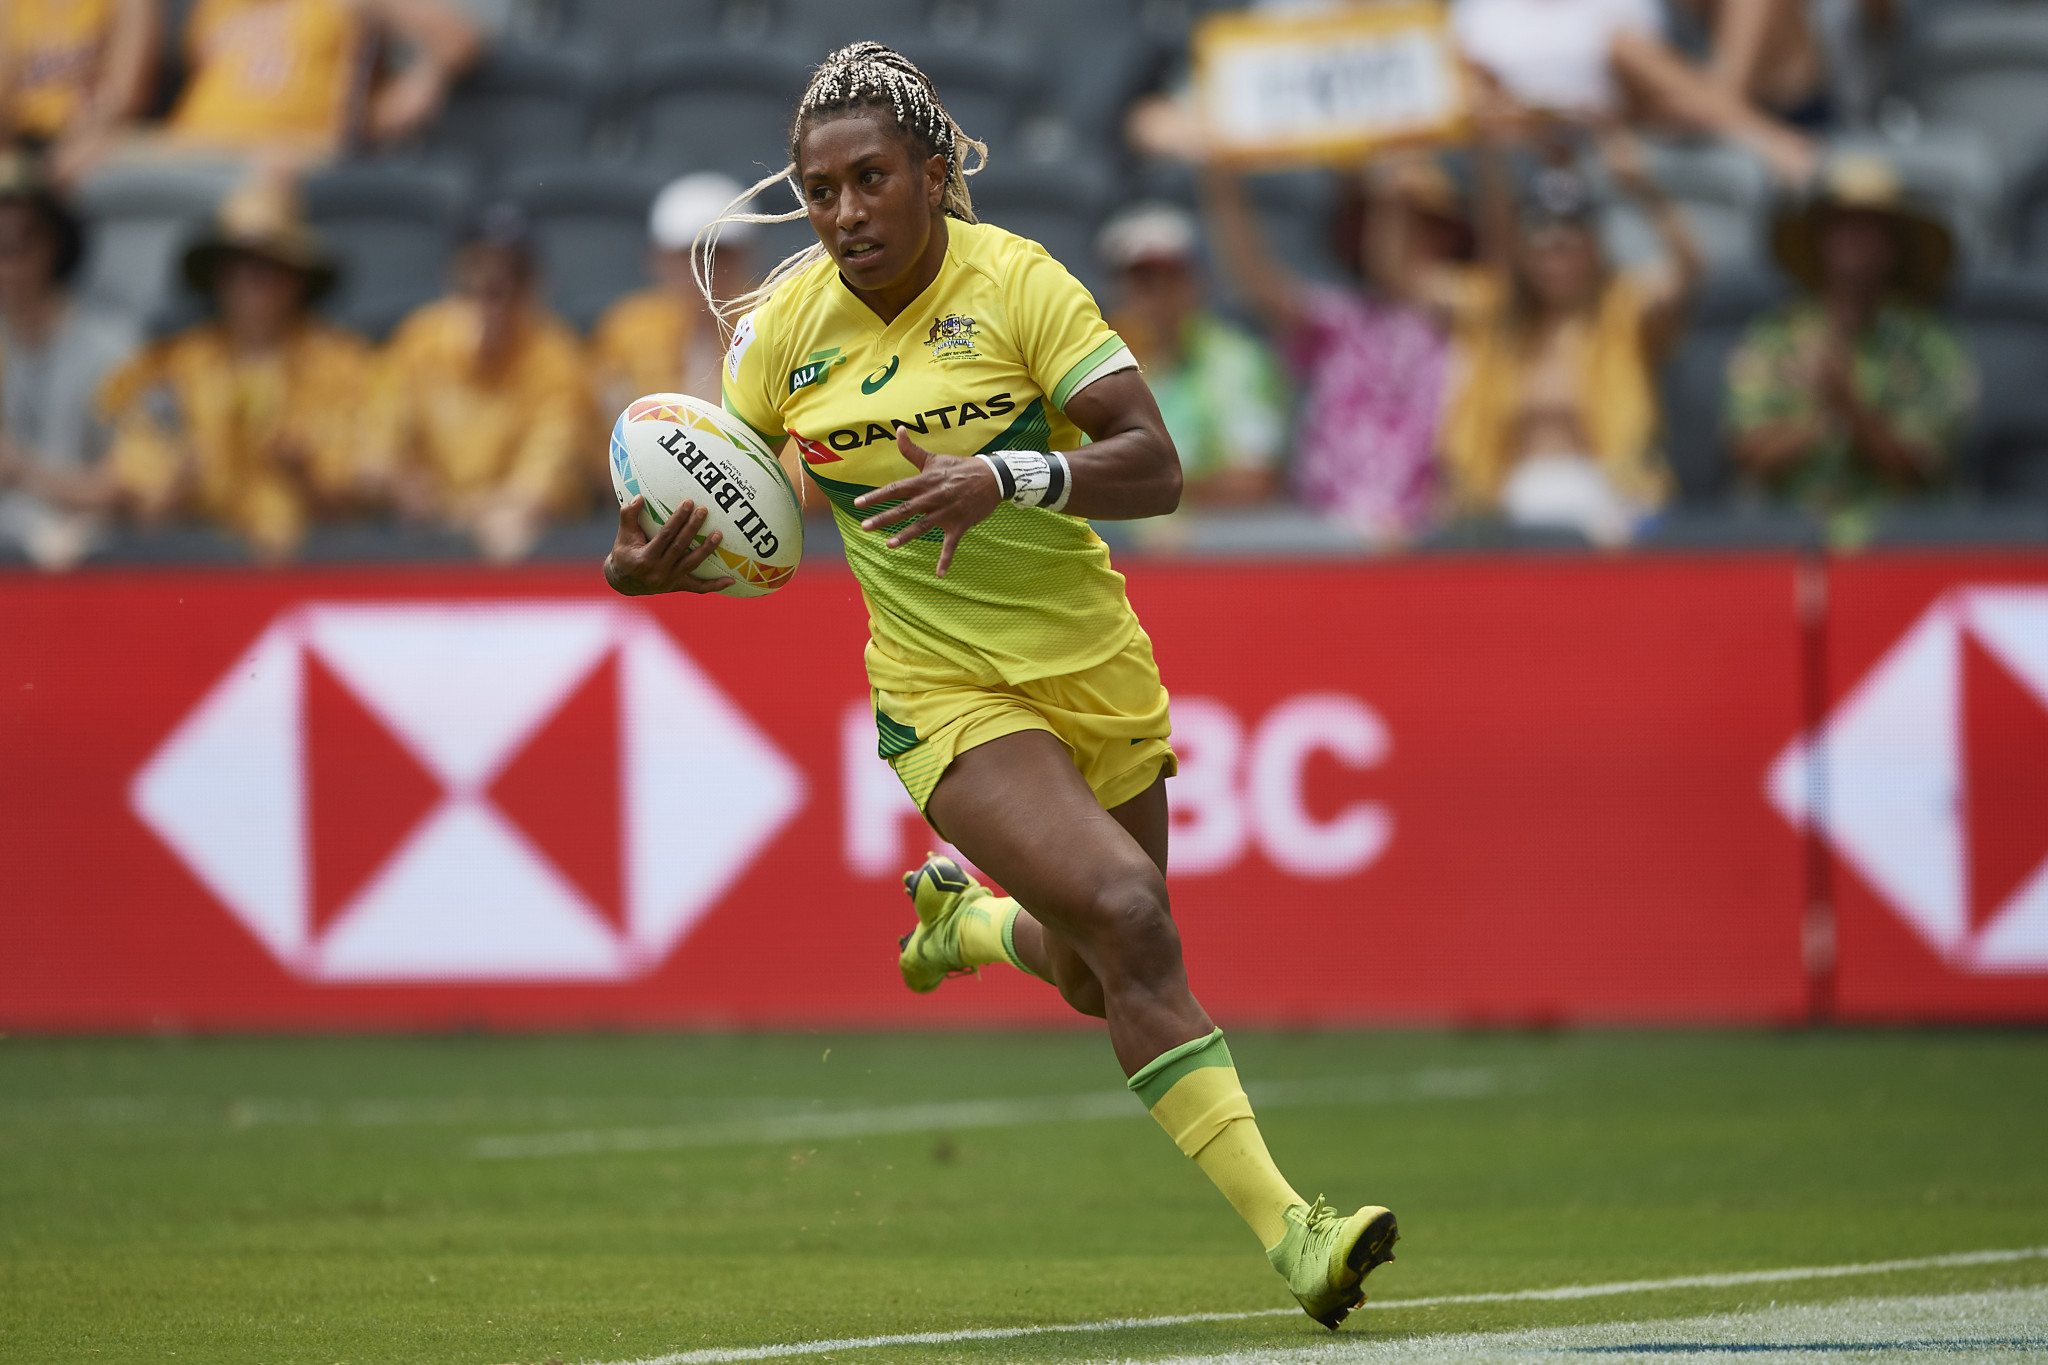 Ellia Green is set to play for New Zealand Warriors in the upcoming NRLW season ©Getty Images